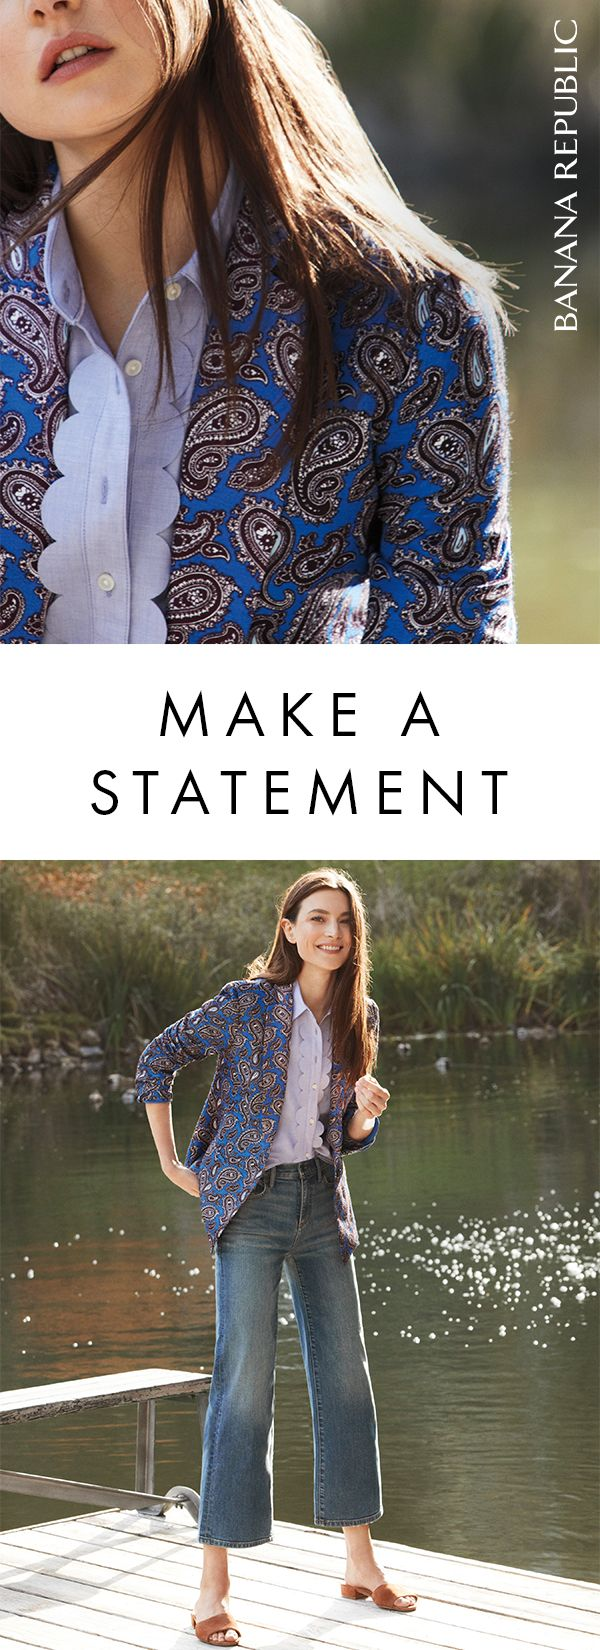 The classic one-button blazer in a luxurious linen blend and a statement paisley print. It's an outfit maker that's great to throw on over a simple outfit to add a serious statement. Shop Banana Republic.